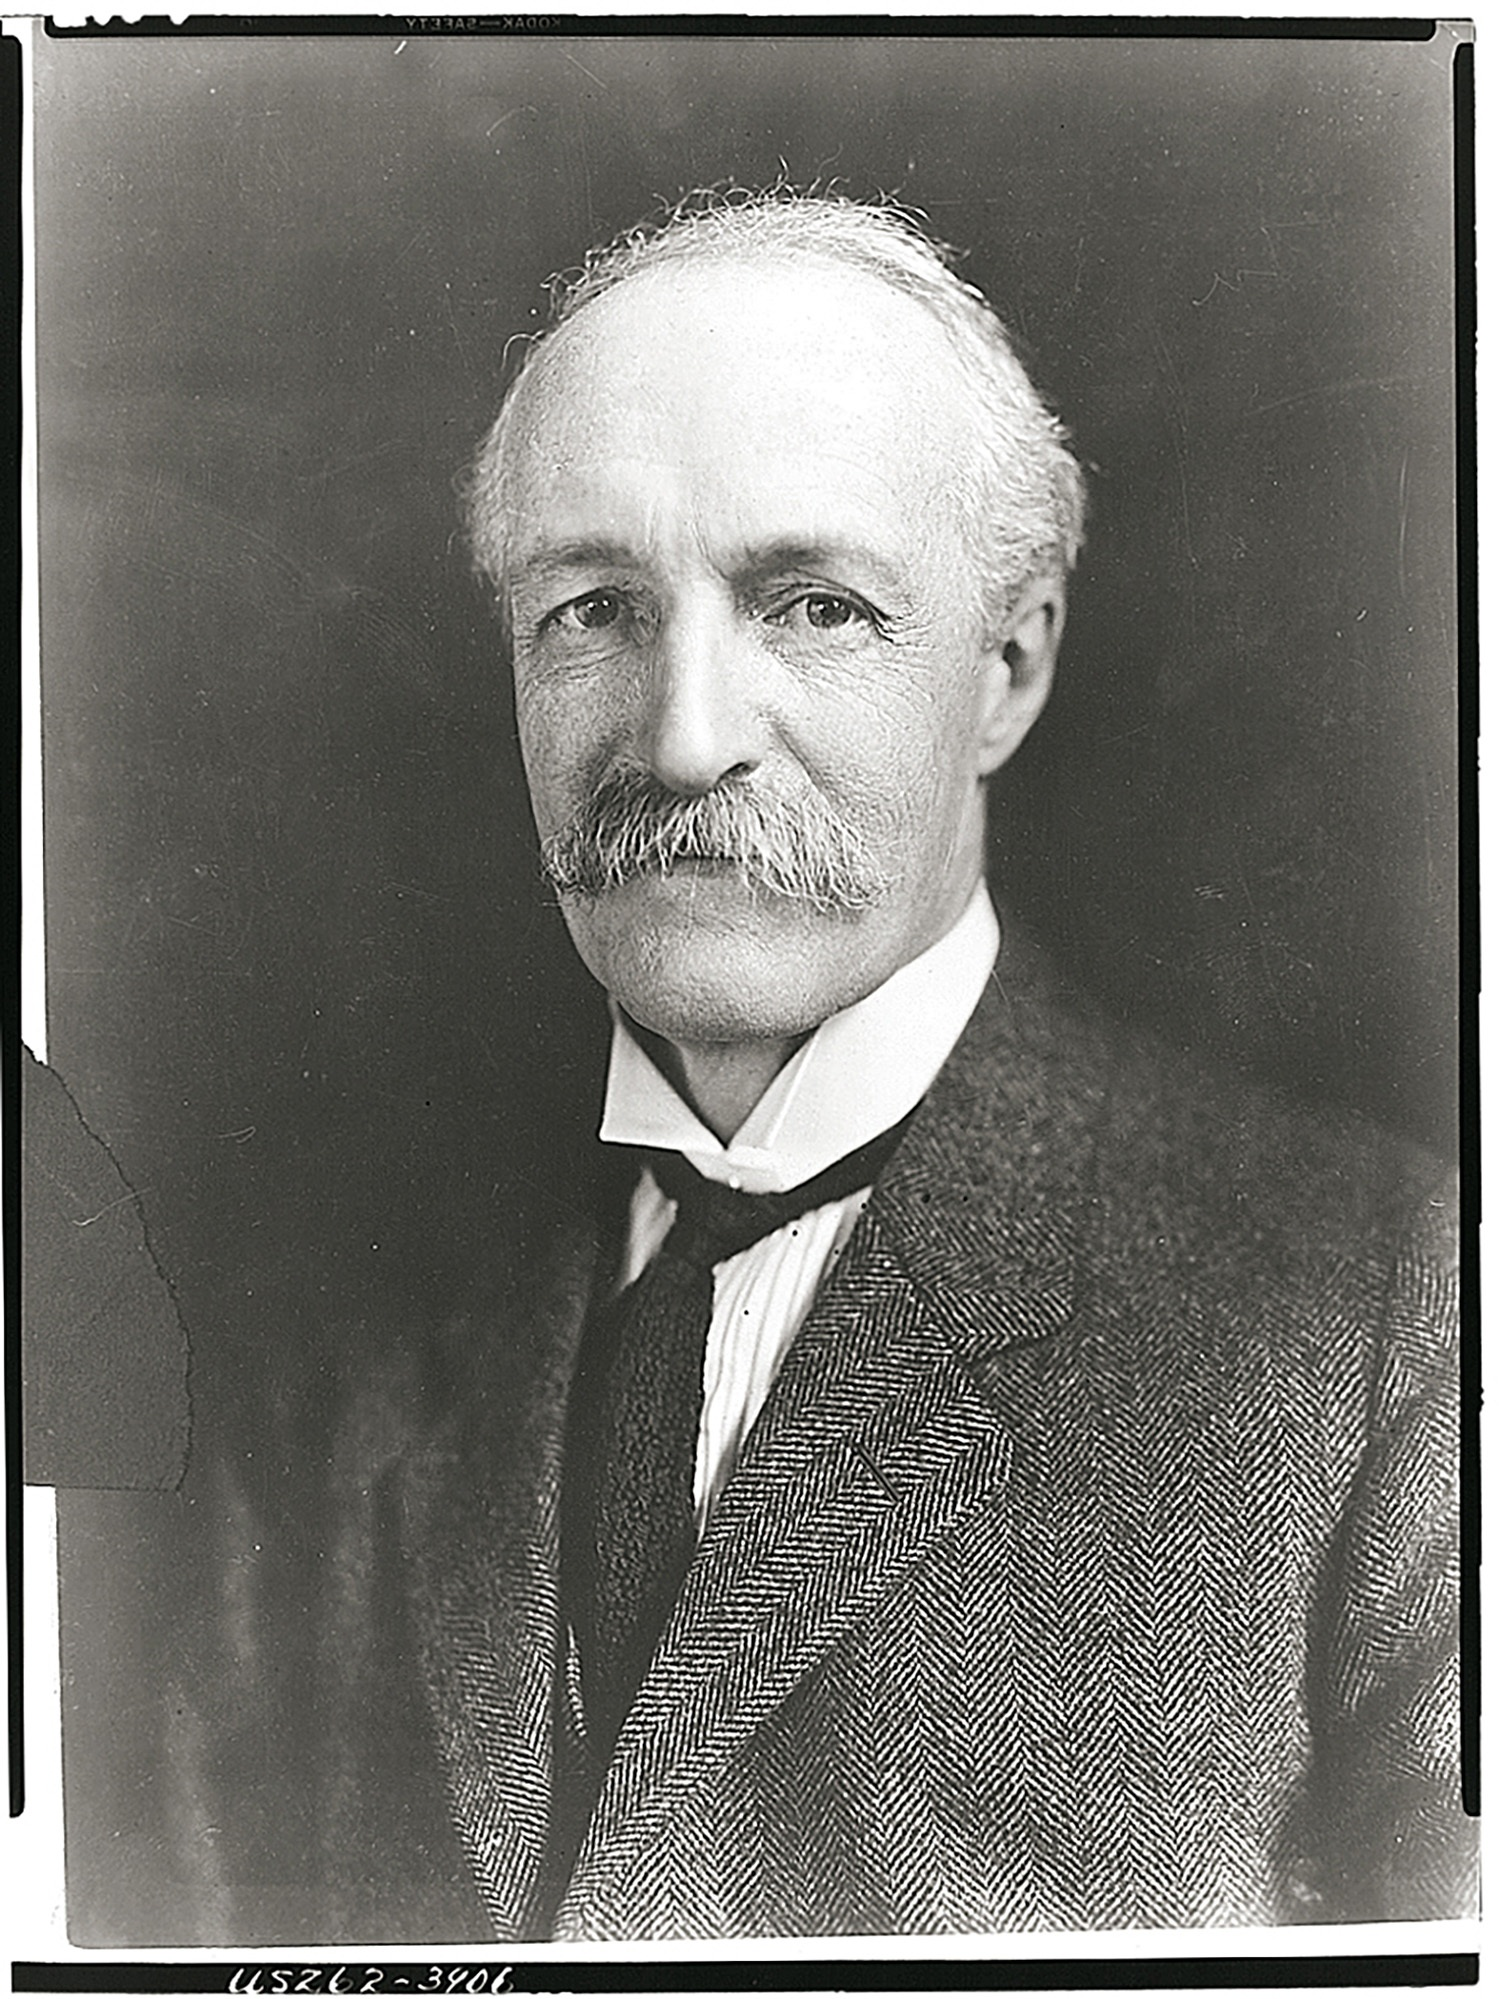 One of the Club's earliest members, Gifford Pinchot joined Boone and Crockett in 1897. He was a devout forester and set policy as head of the United States Forest Service during the department's infancy in the early 1900s, firmly believing that the country's vast forests were a renewable, profitable resource meant to be managed by the federal government, rather than private holdings.